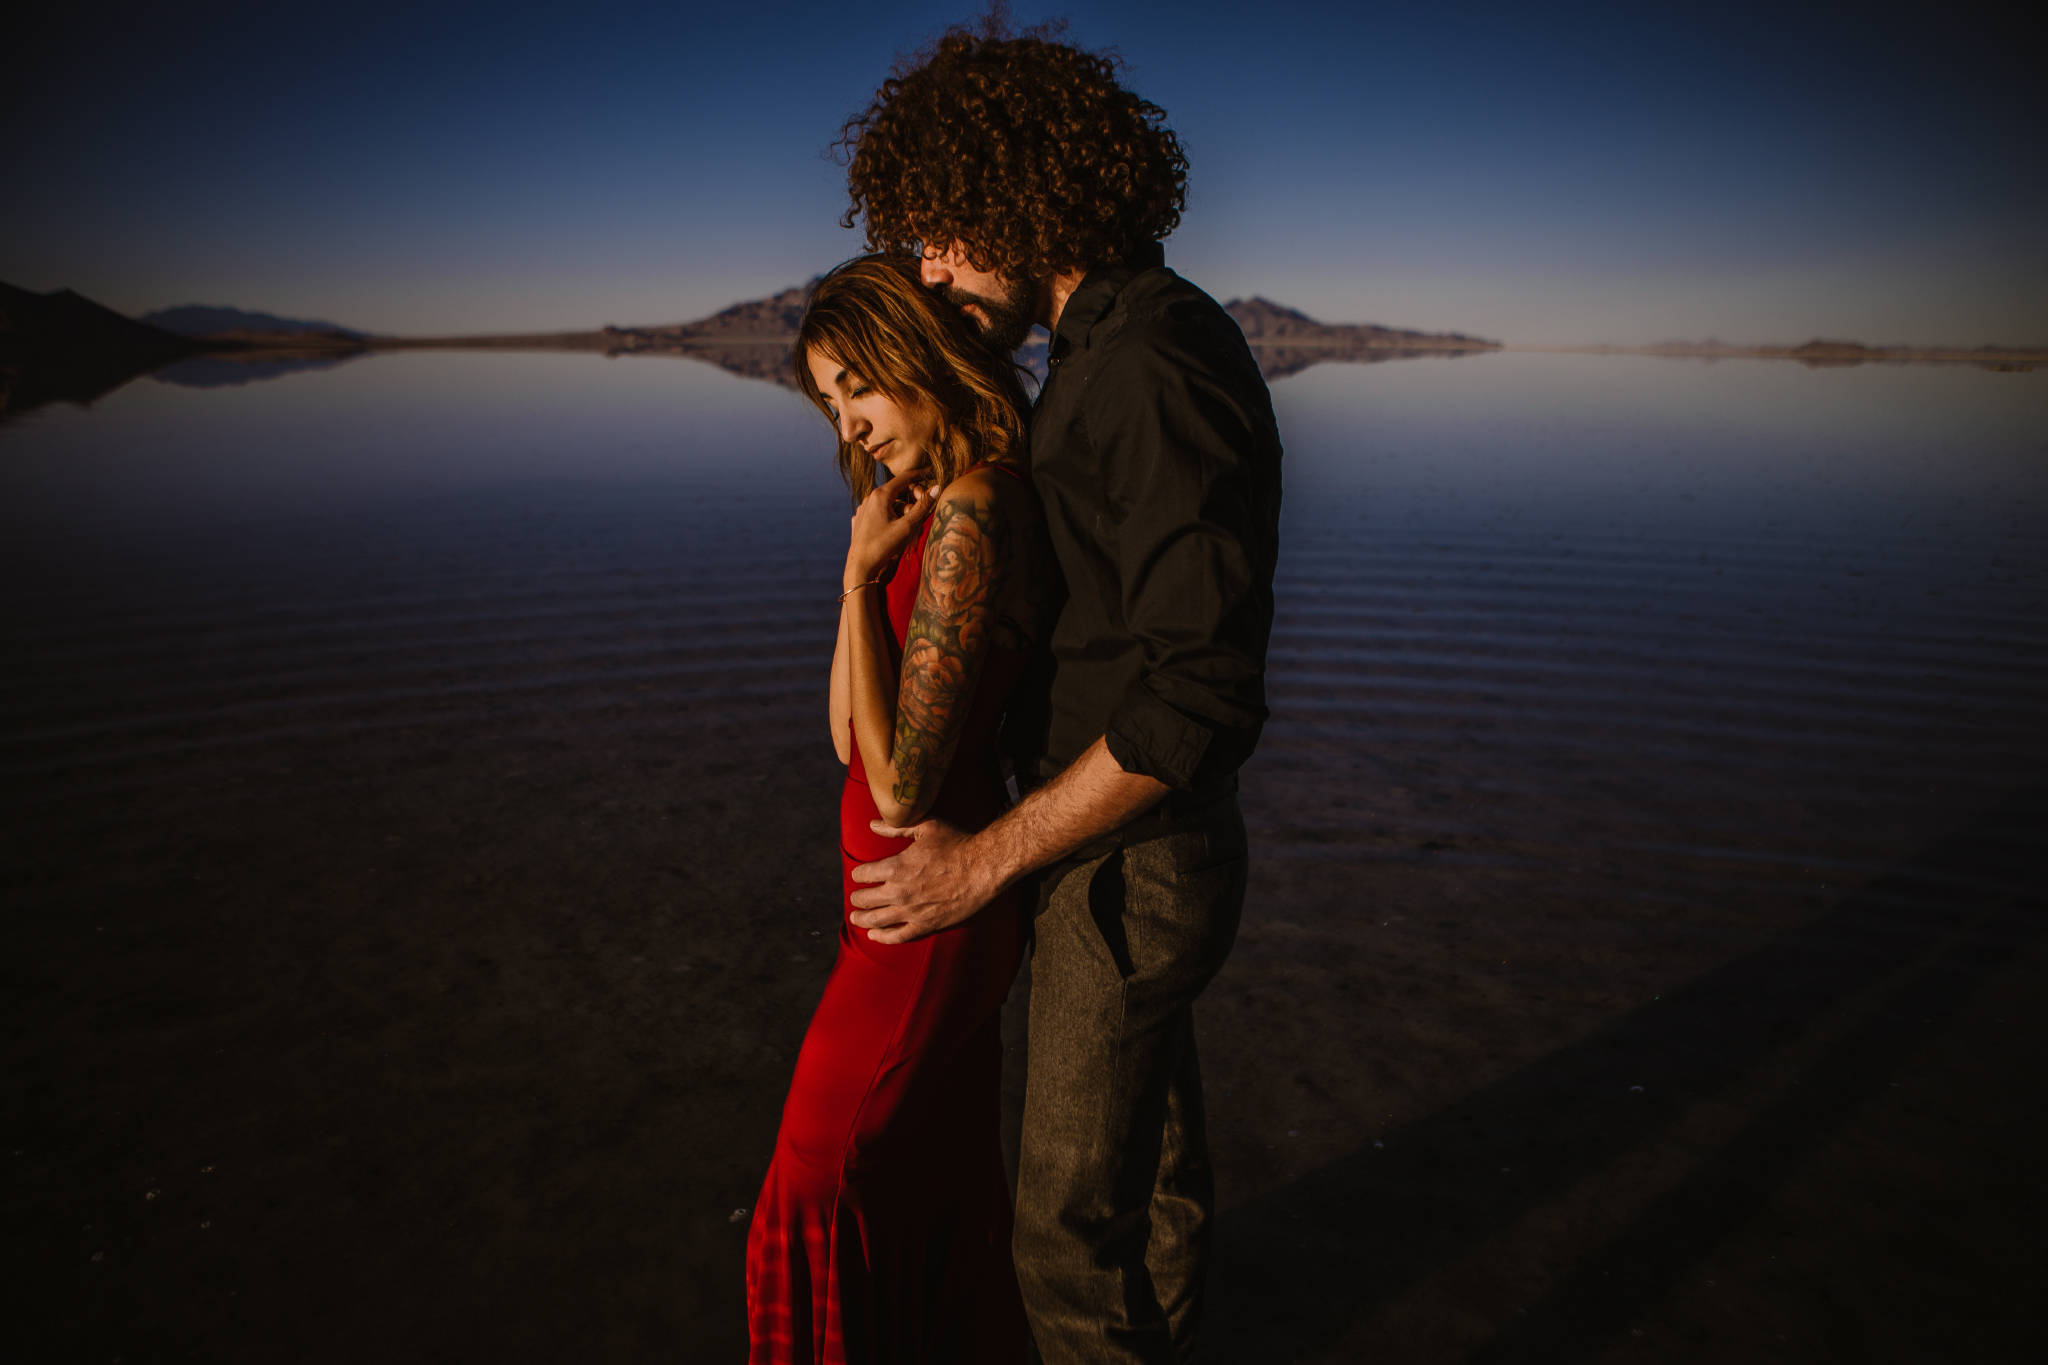 san diego wedding   photographer | close-up of man in black polo holding waist and kissing head   of woman in red dress while standing on salt flats